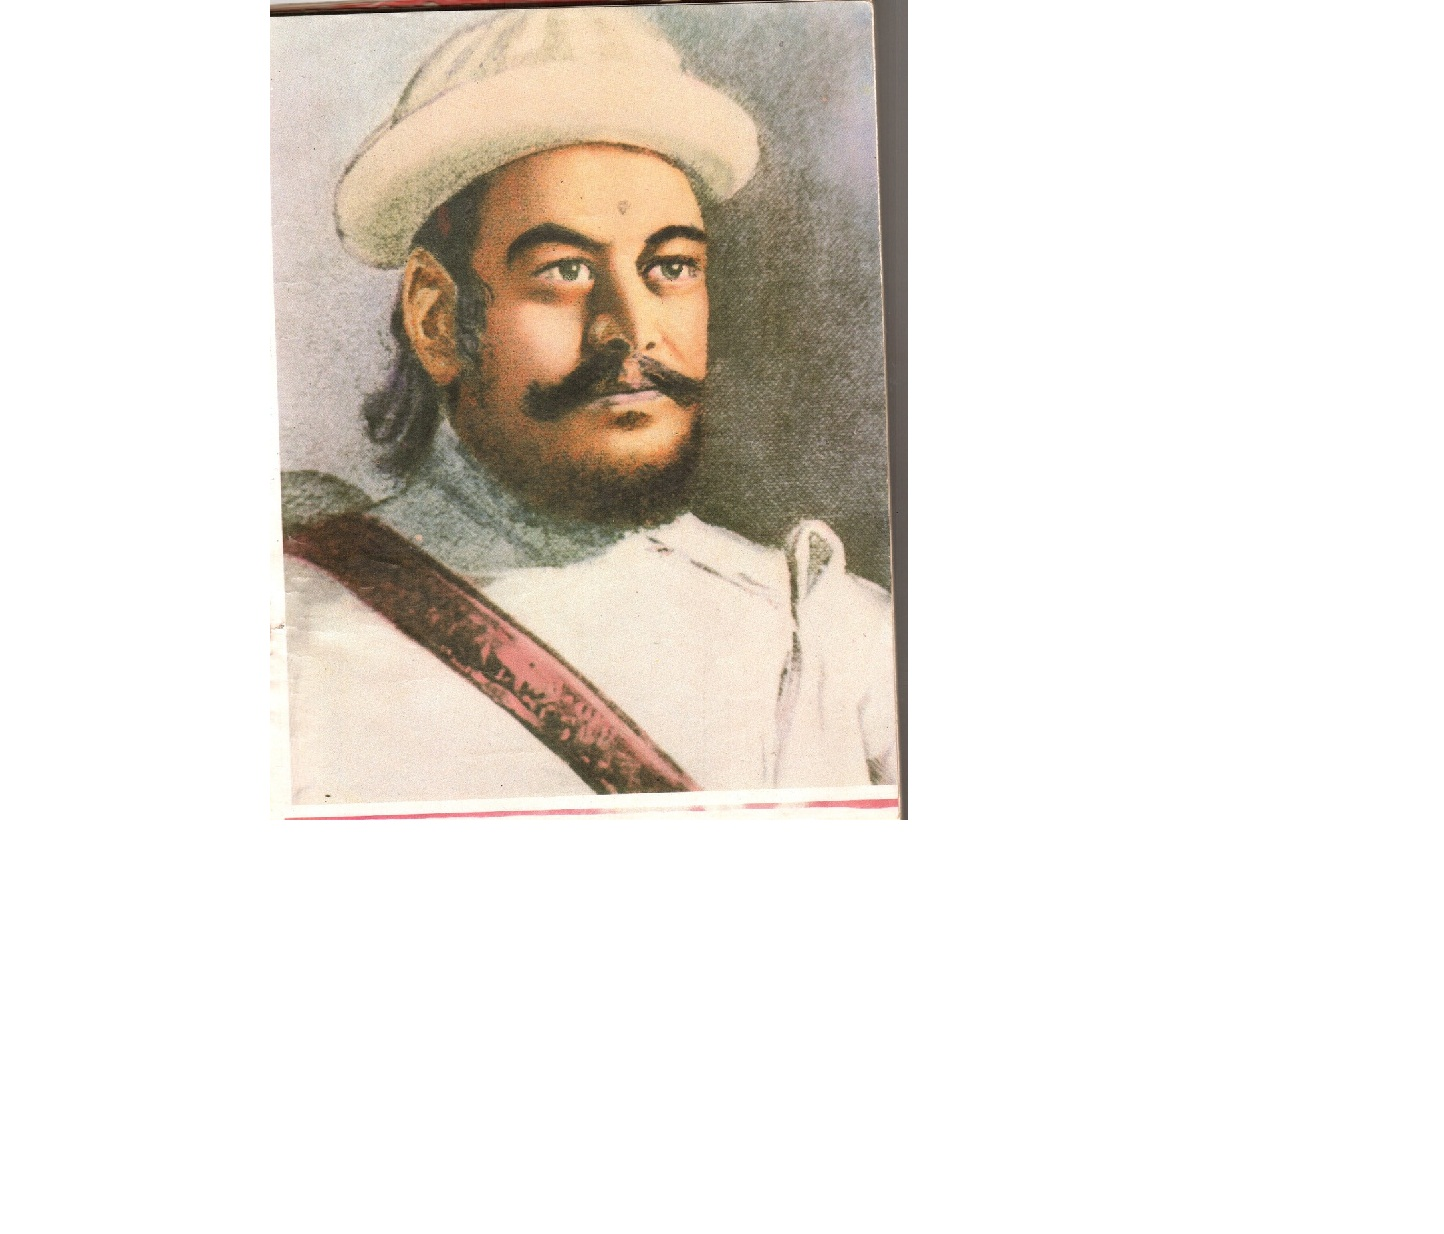 How Patriotic Was Bada Kaji Amar Singh Thapa?